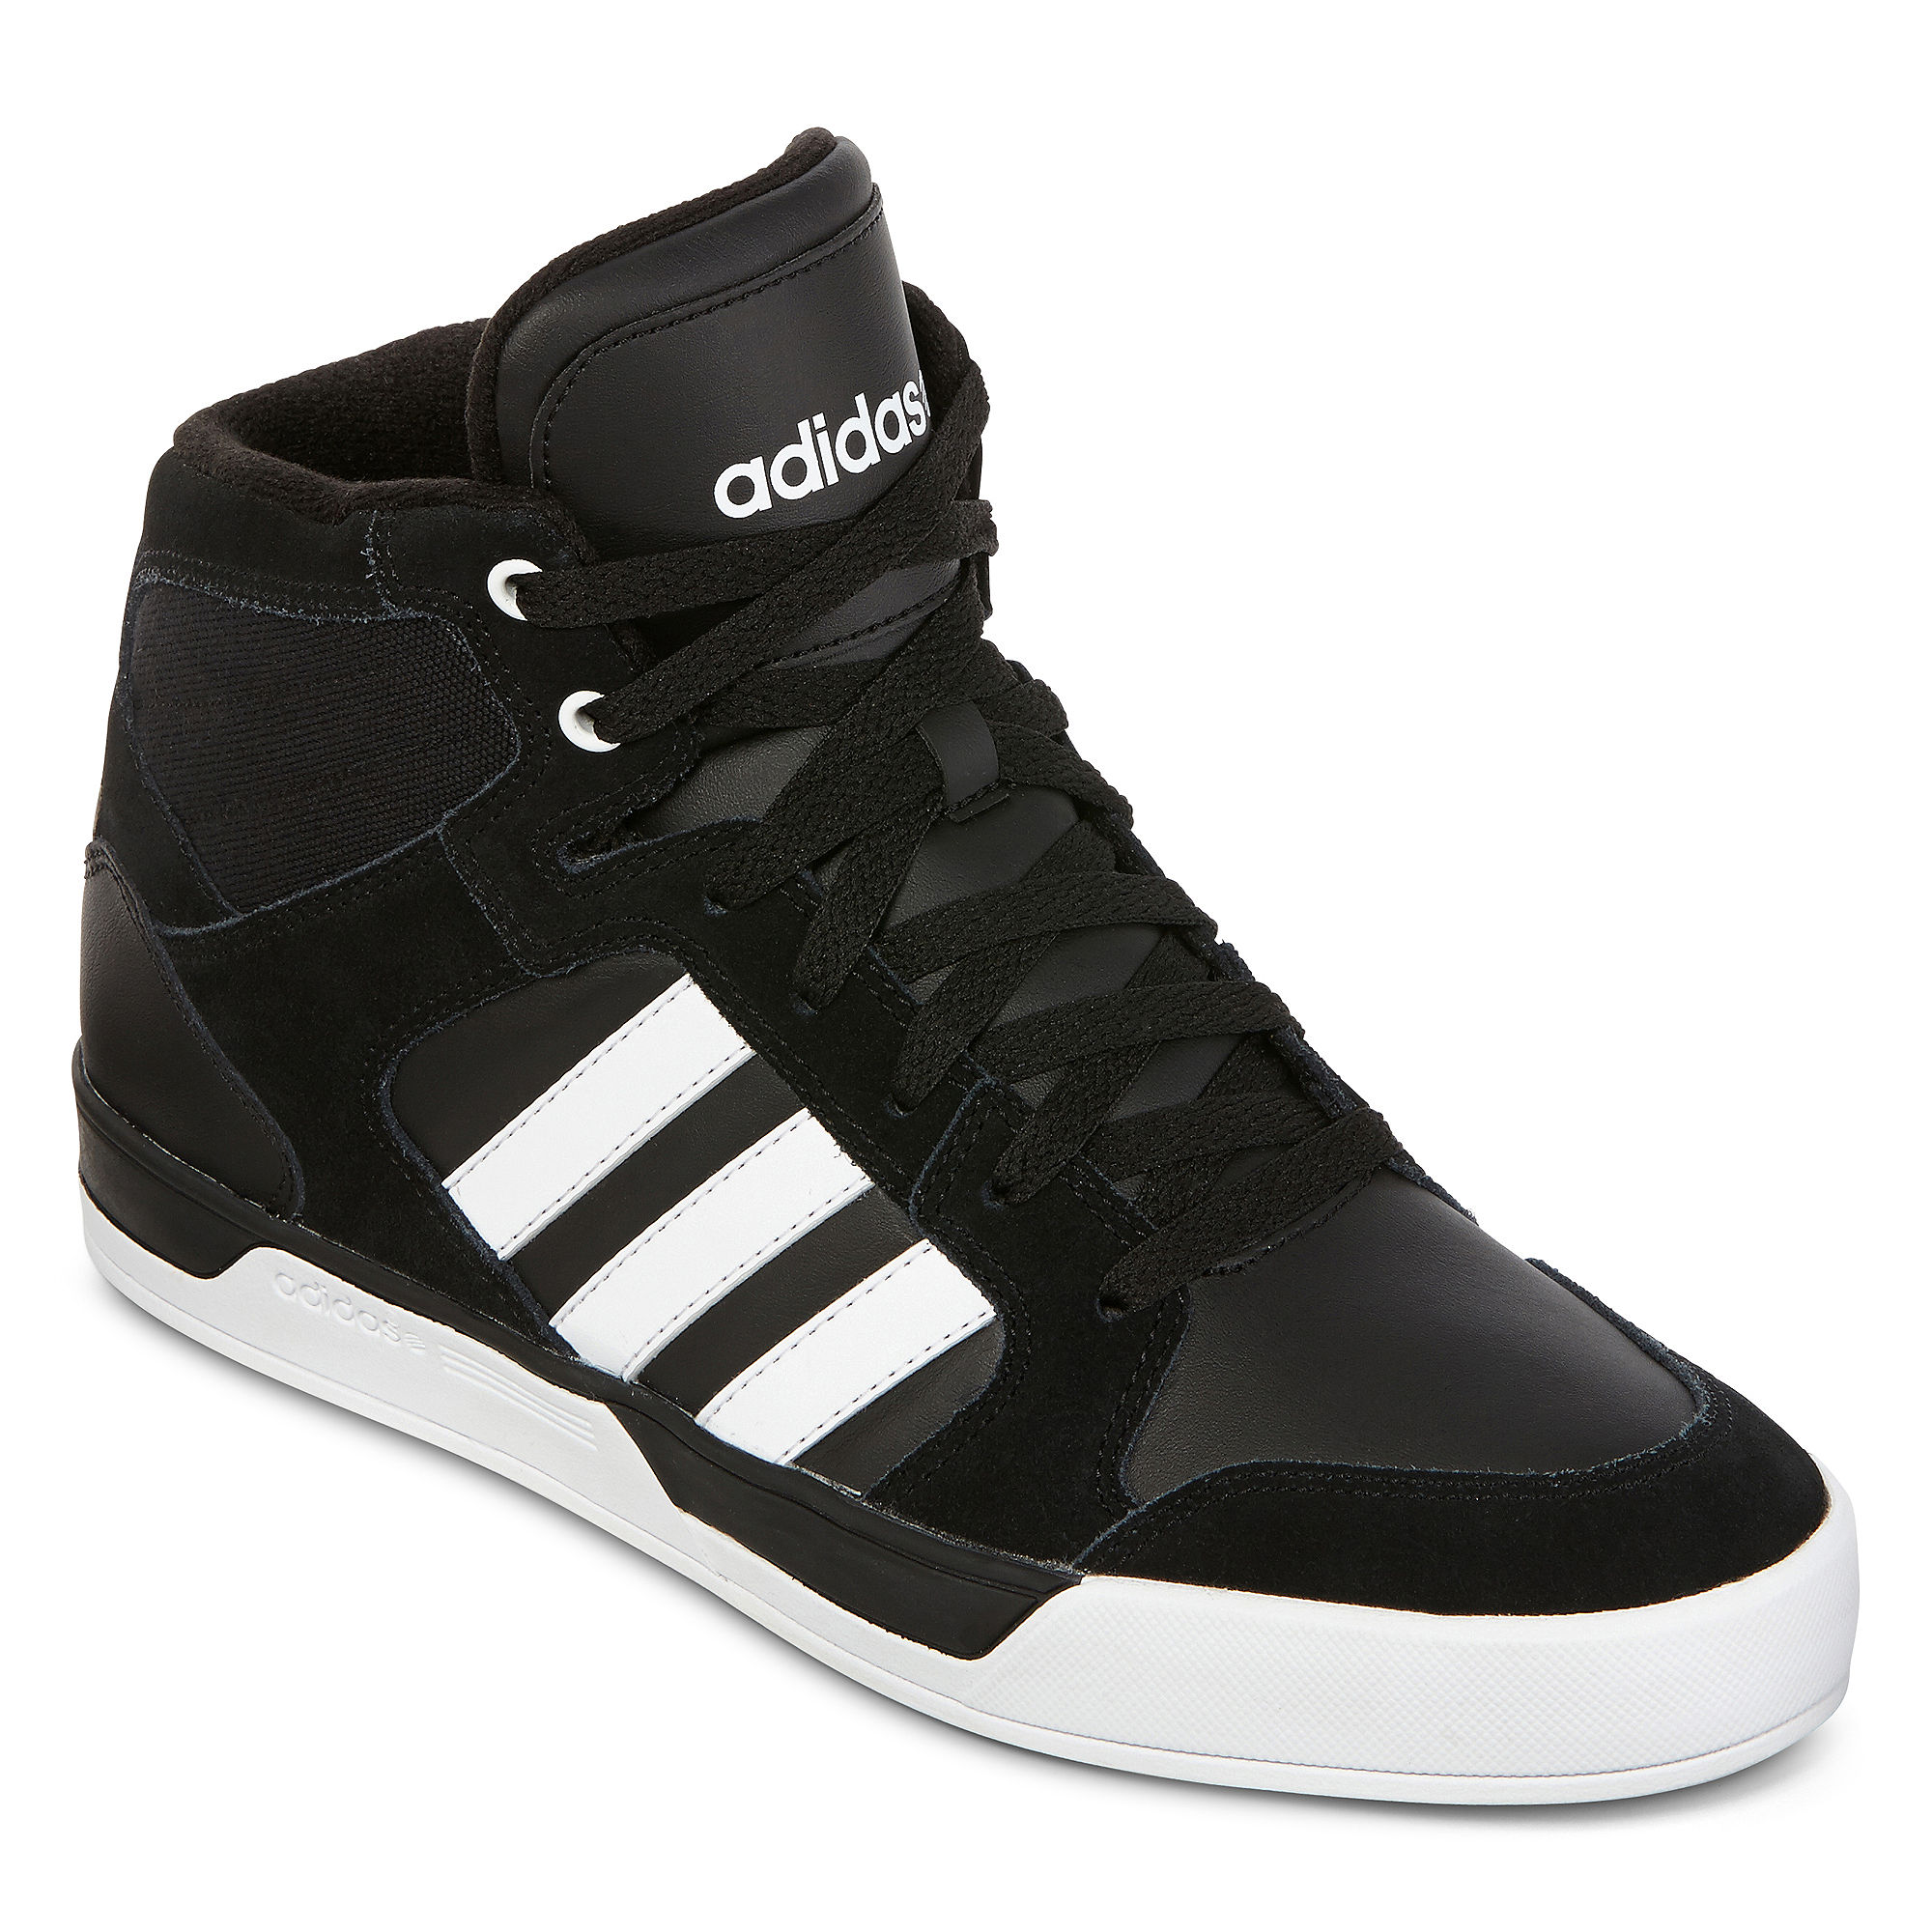 UPC 887383295908 product image for adidas Men's BBNEO Raleigh Mid Casual  Shoes | upcitemdb.com